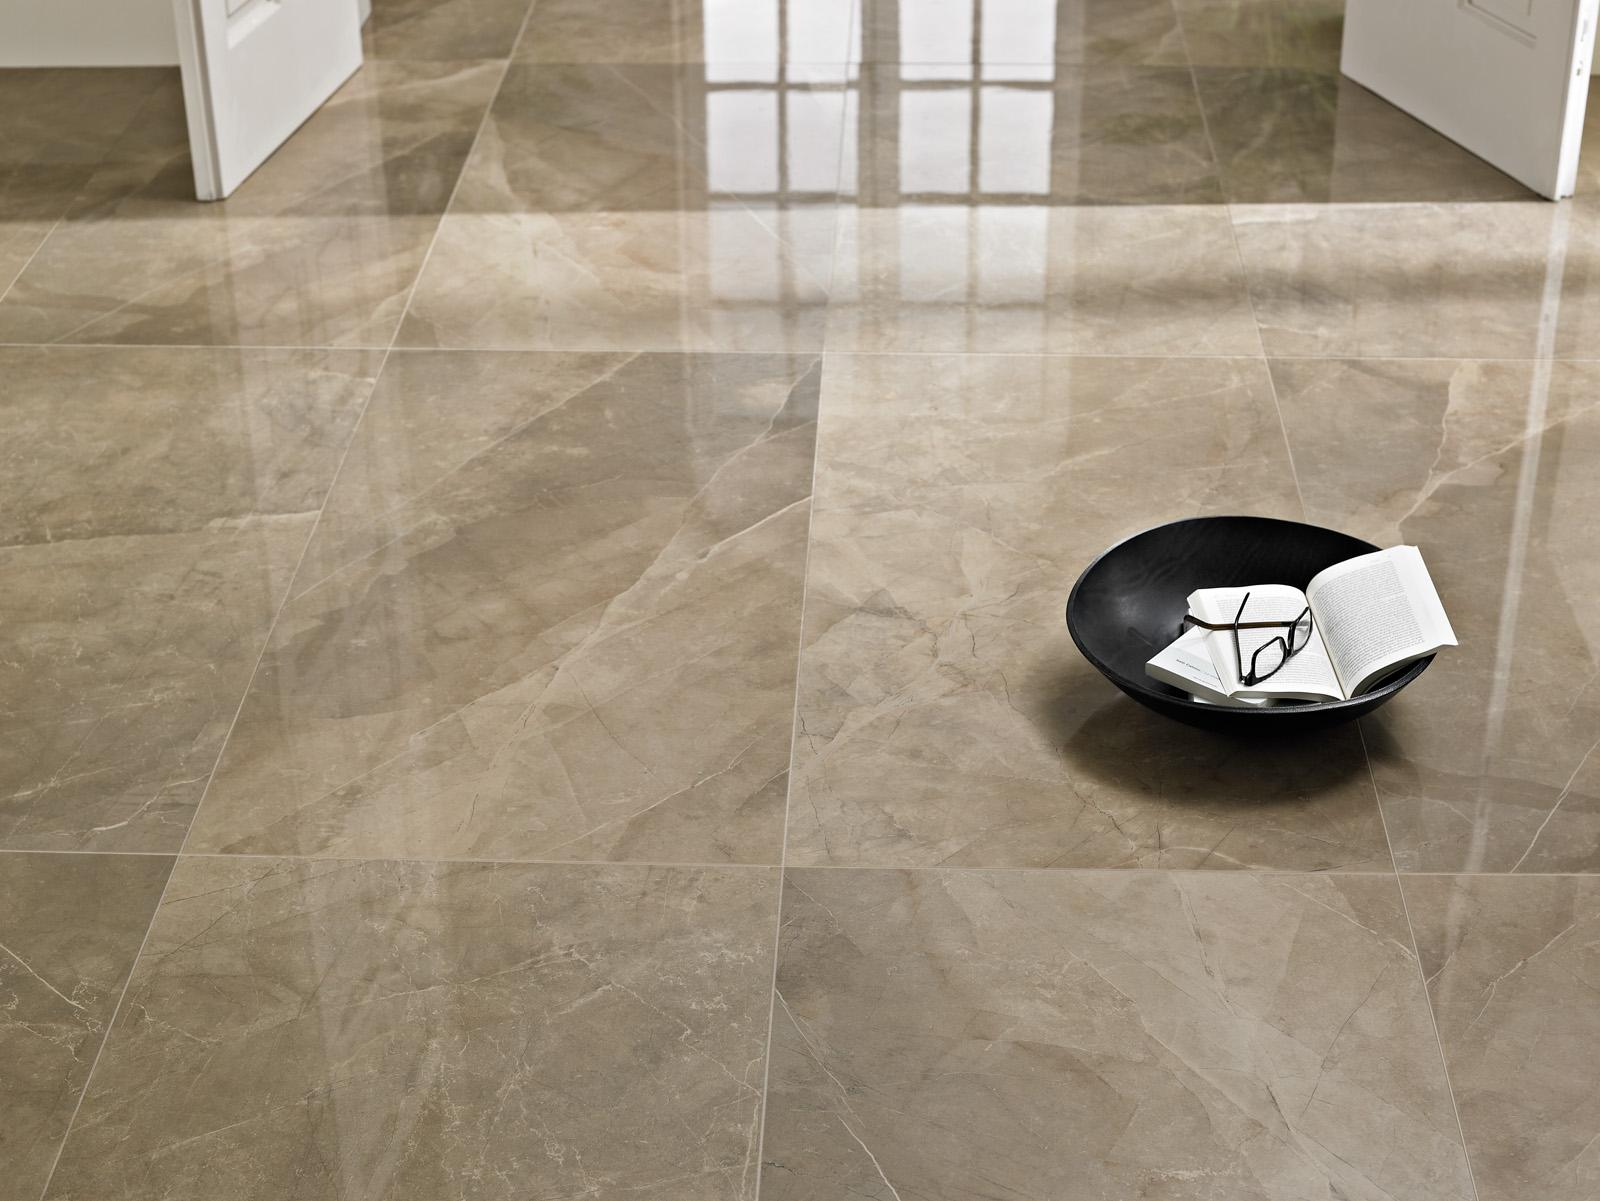 EvolutionMarble Feinsteinzeug In Marmoroptik Marazzi - Fliesen jura marmor optik